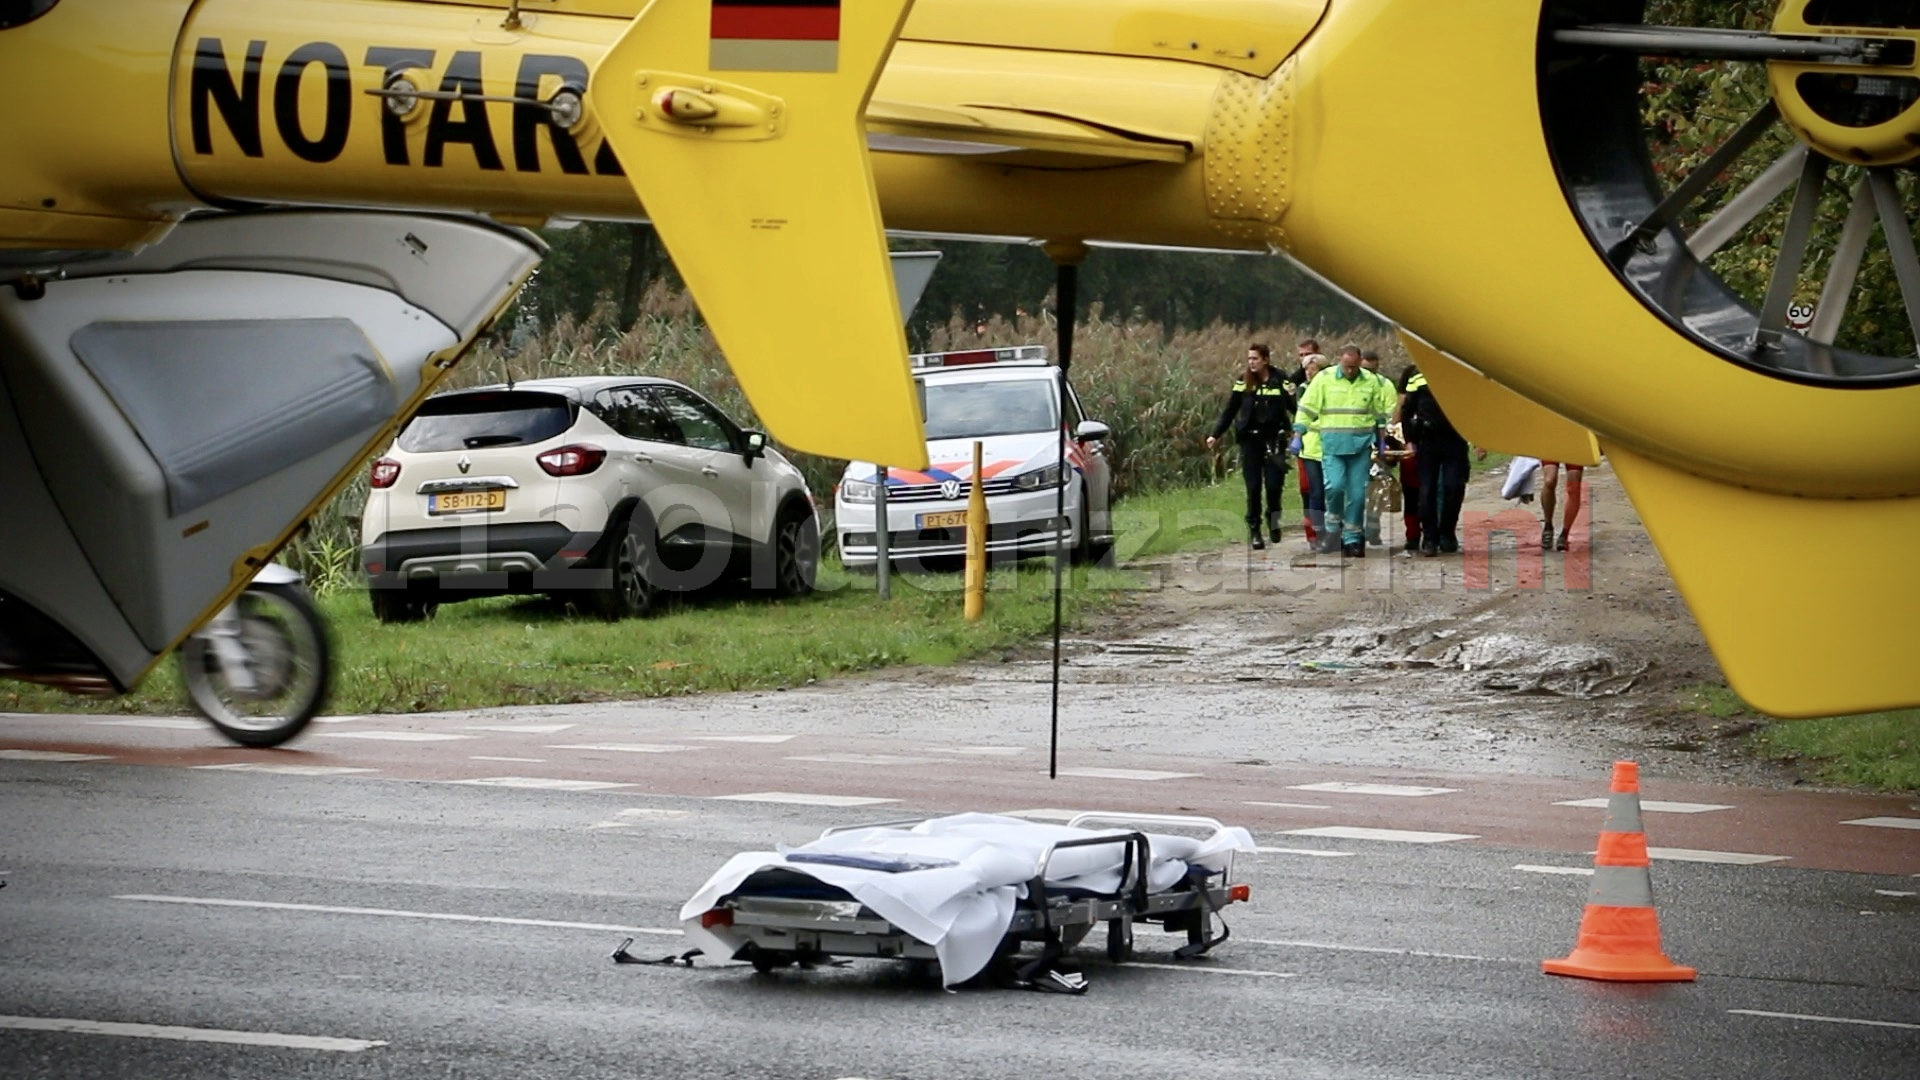 Mountainbiker gewond na val in Agelo; traumahelikopter ingezet